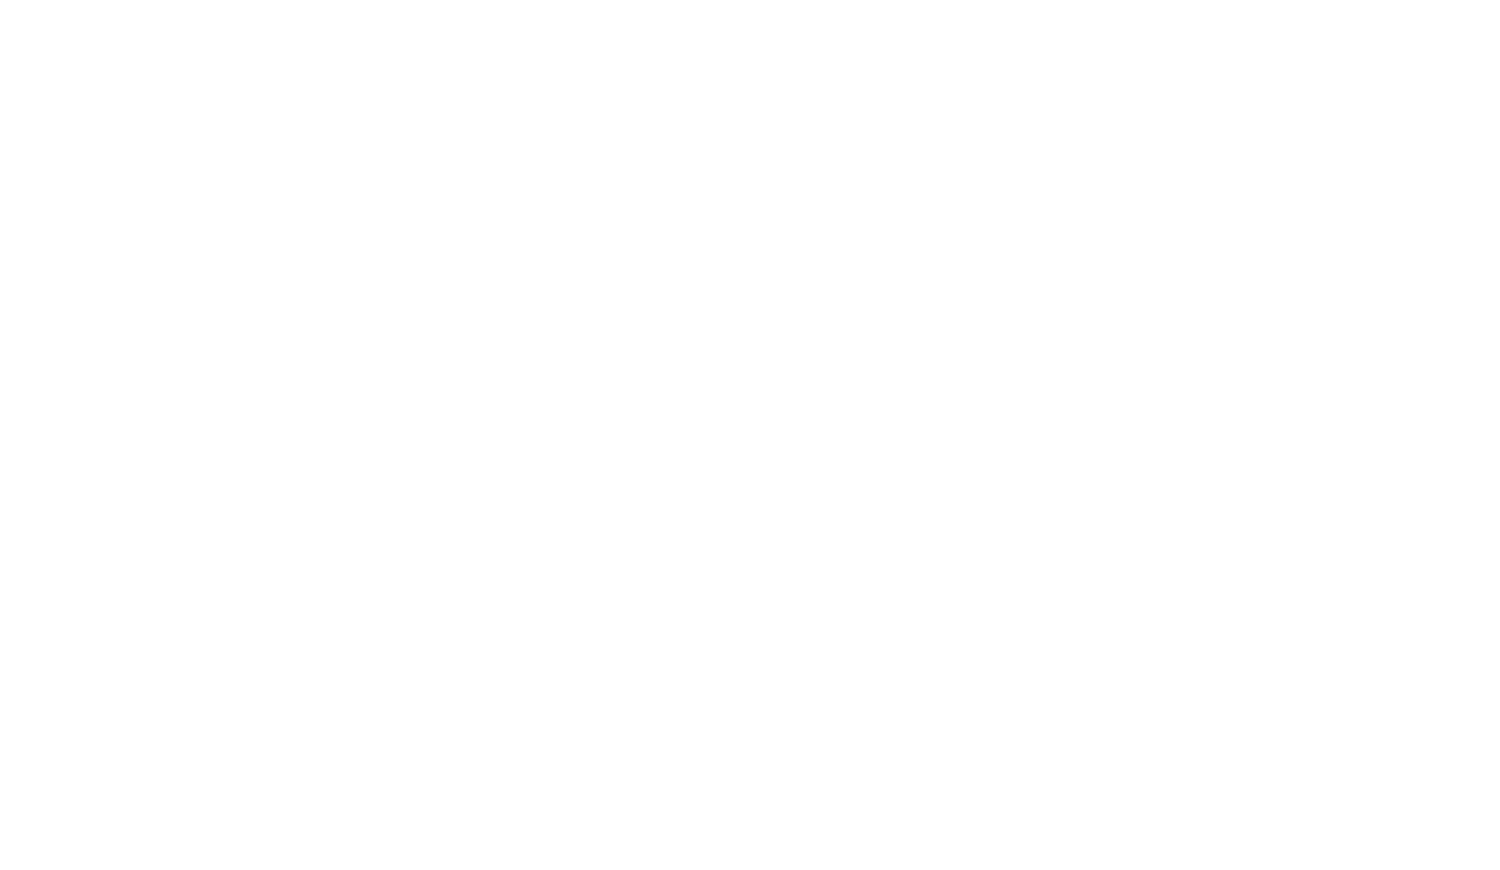 Mill Creek Watershed Council of Communities